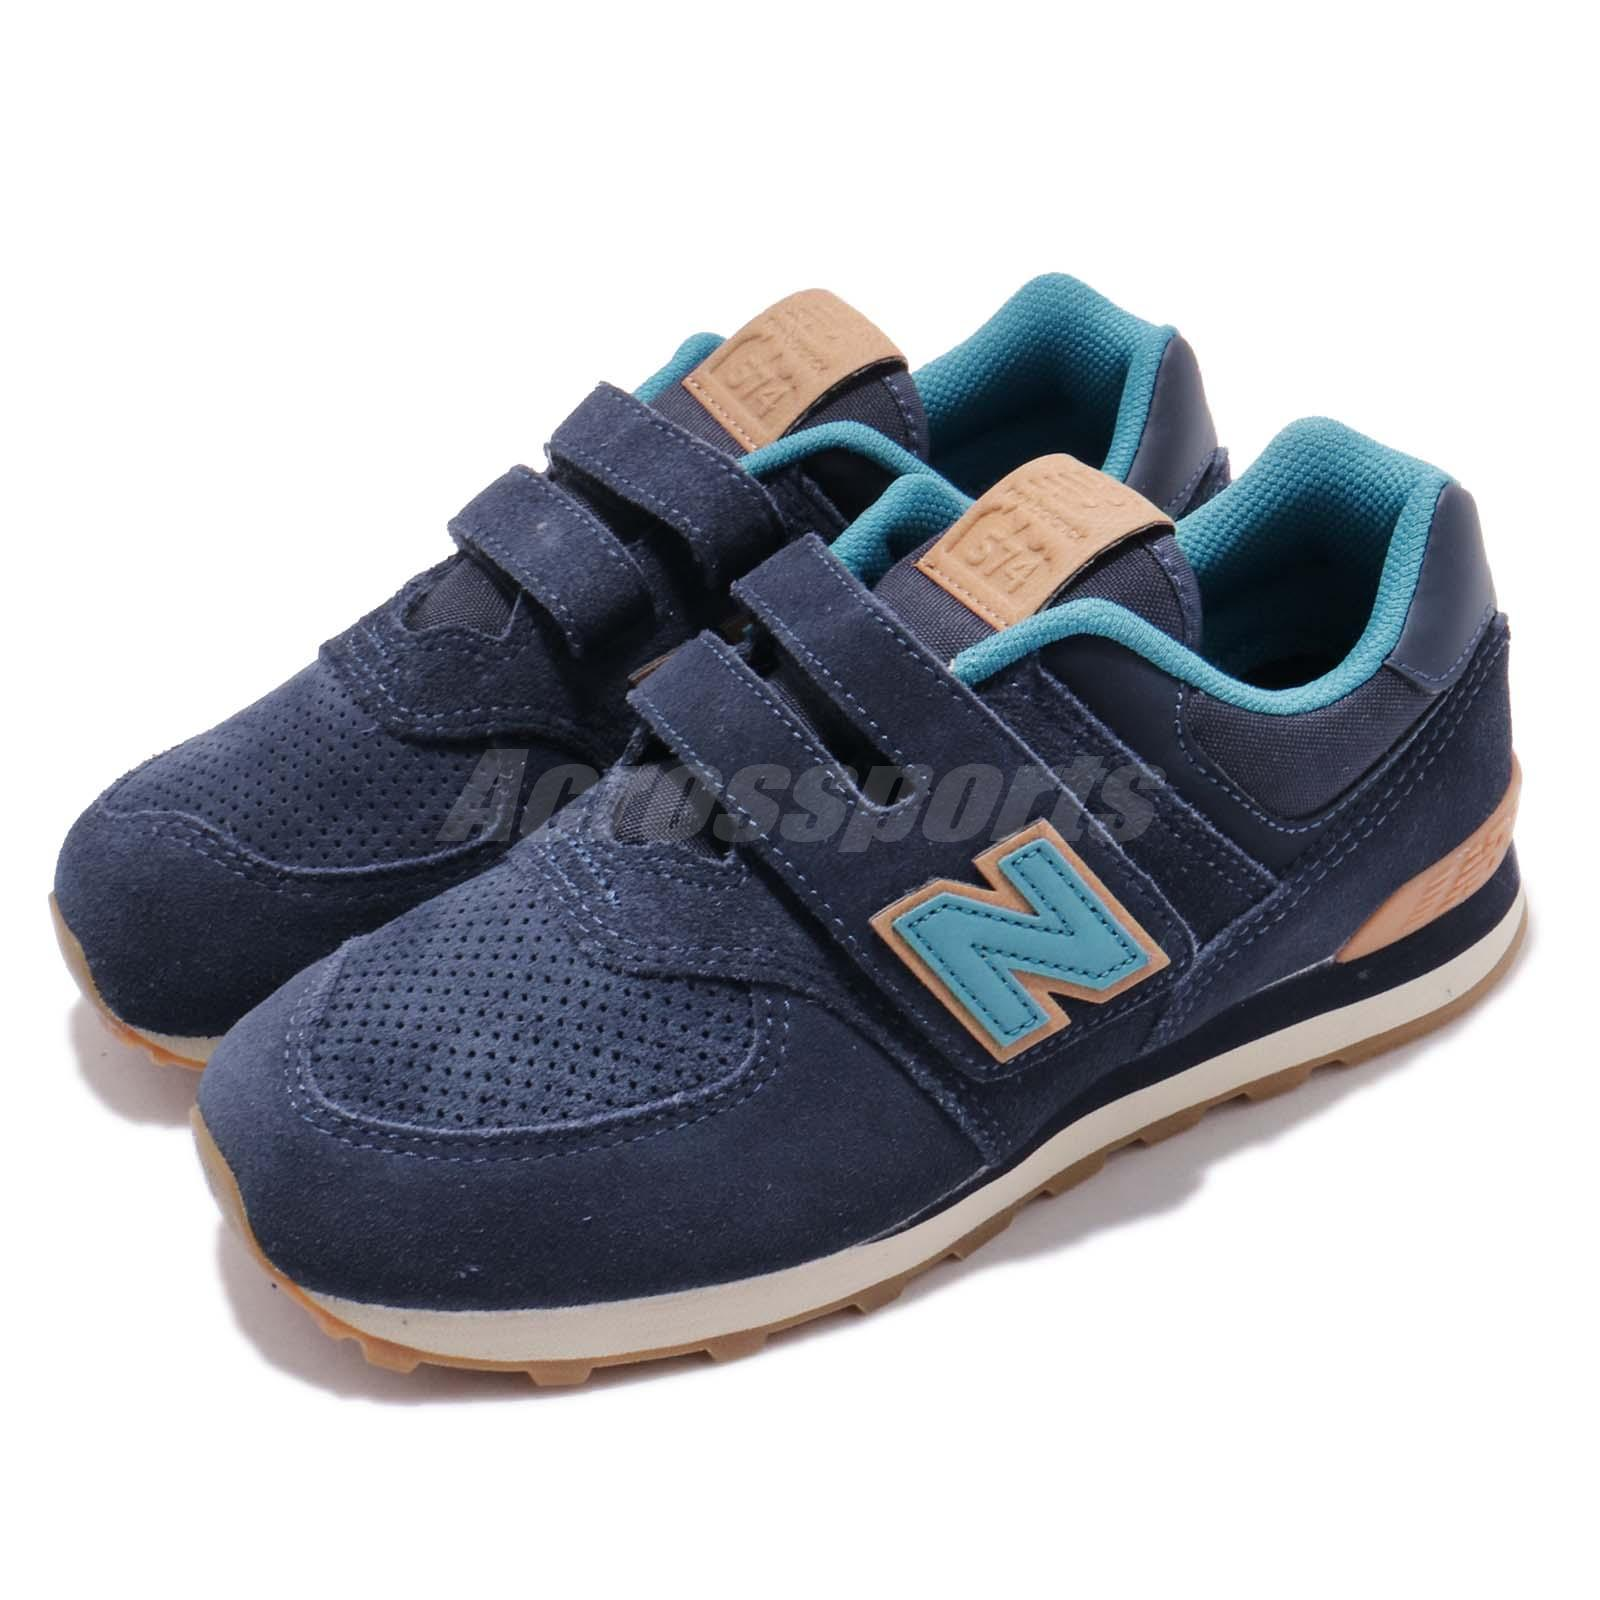 54456899 Details about New Balance 574 Wide Navy Blue Brown Kids Running Shoes  YV574TI W